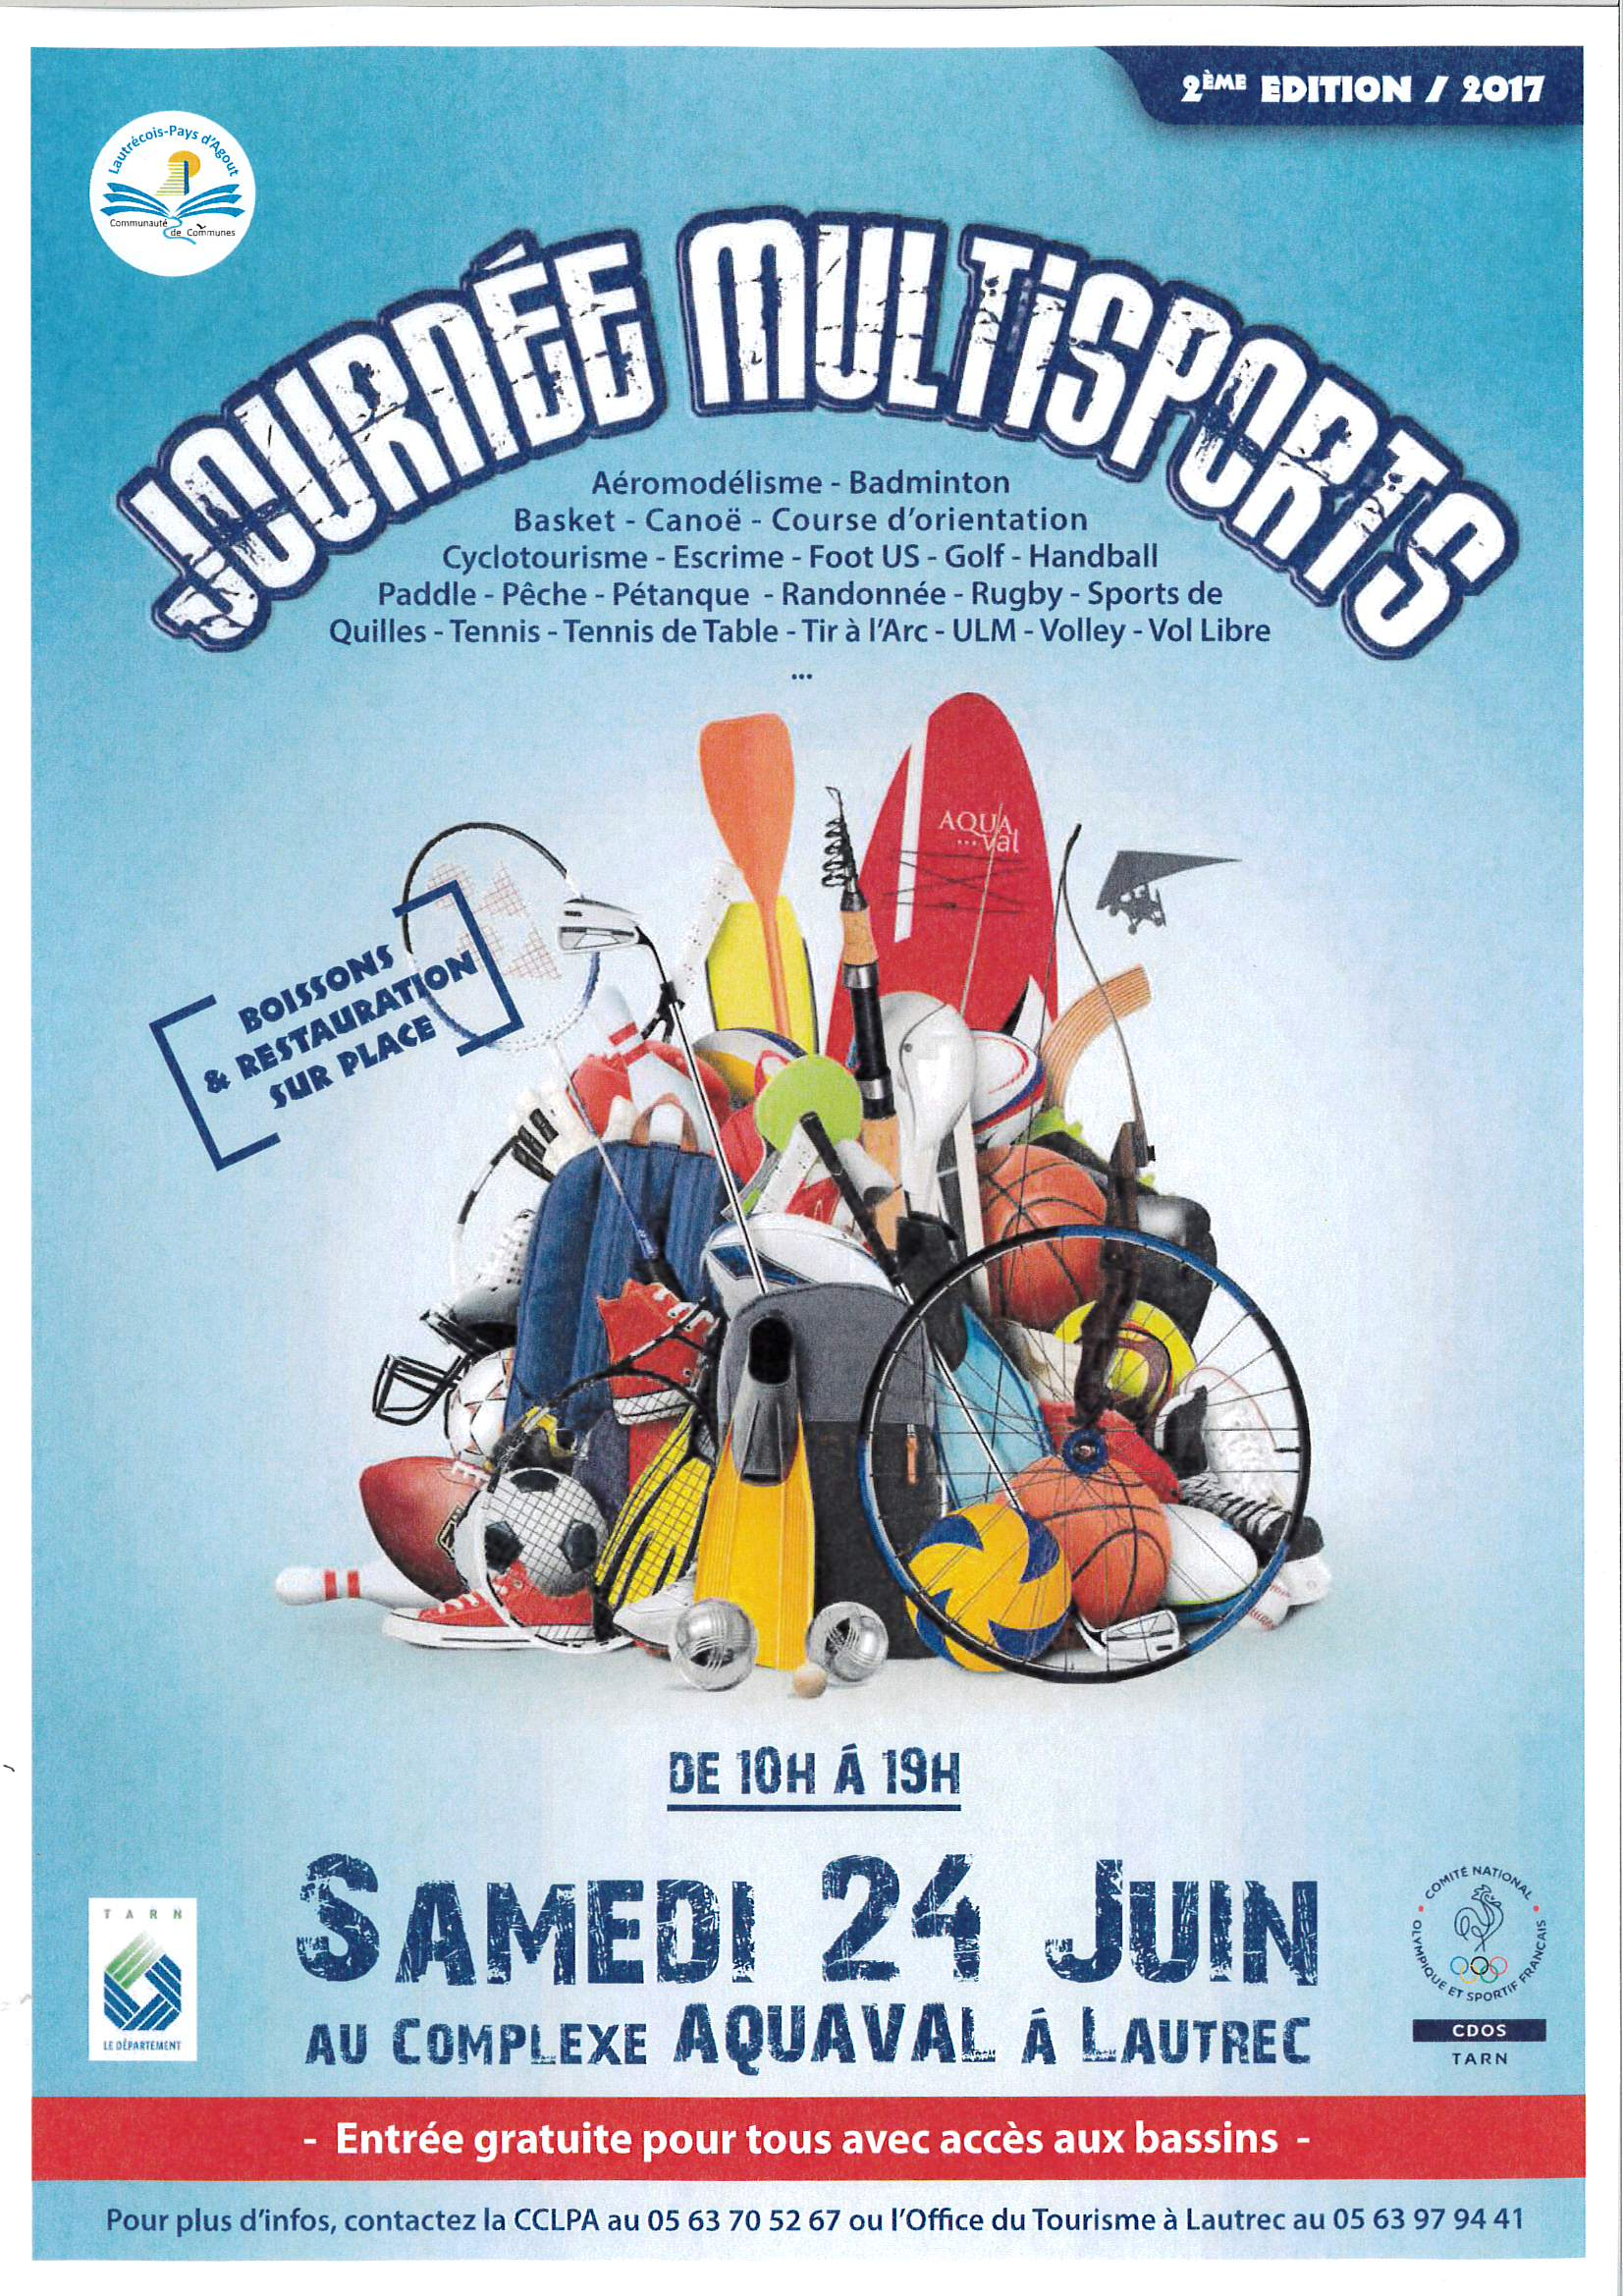 JOURNEE MULTISPORTS A AQUAVAL